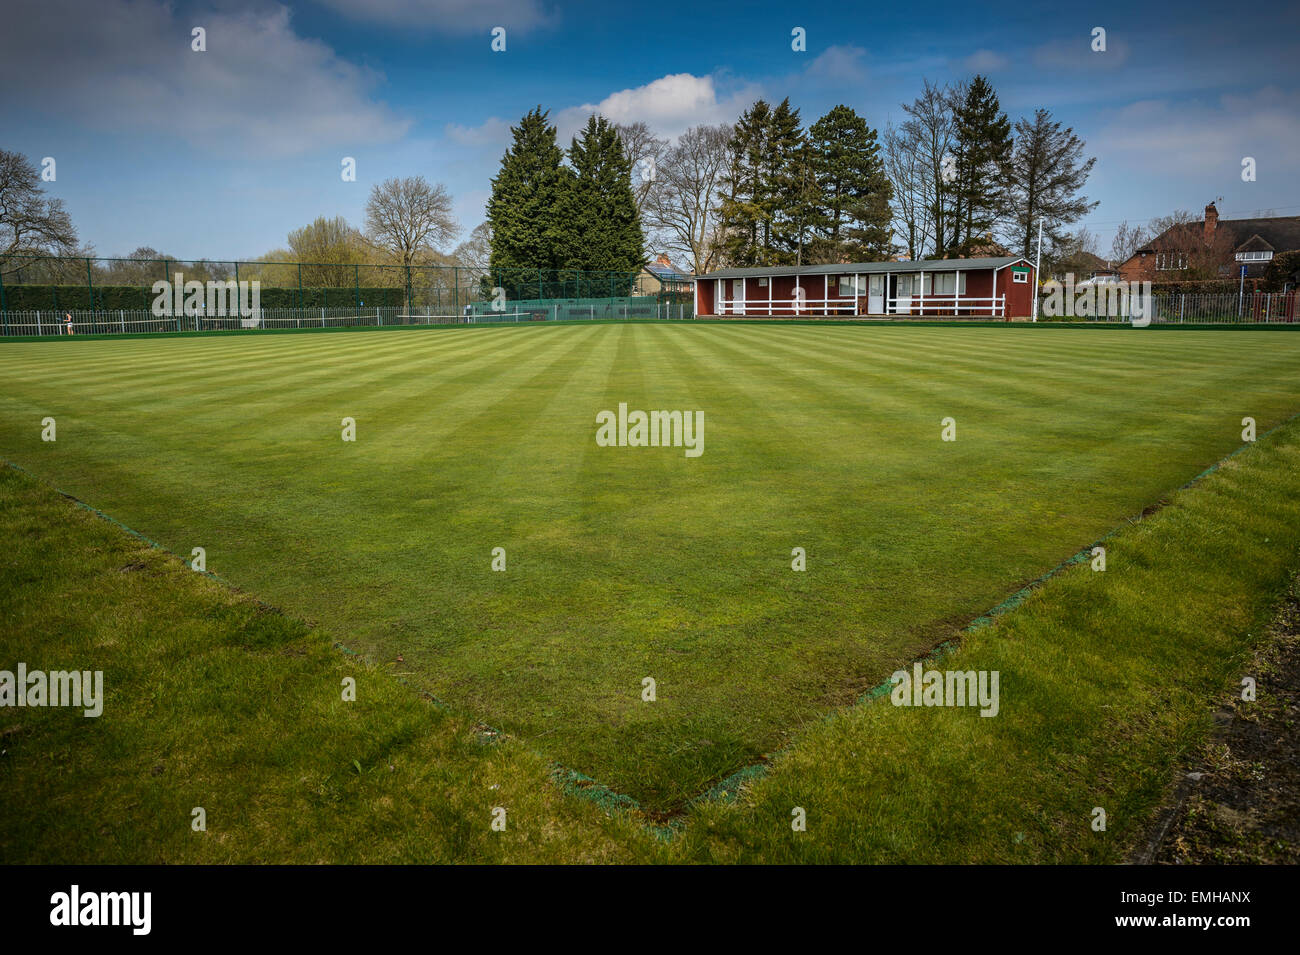 Freshly mowed lawn on a bowling green with clubhouse in background in a rural Yorkshire village. - Stock Image